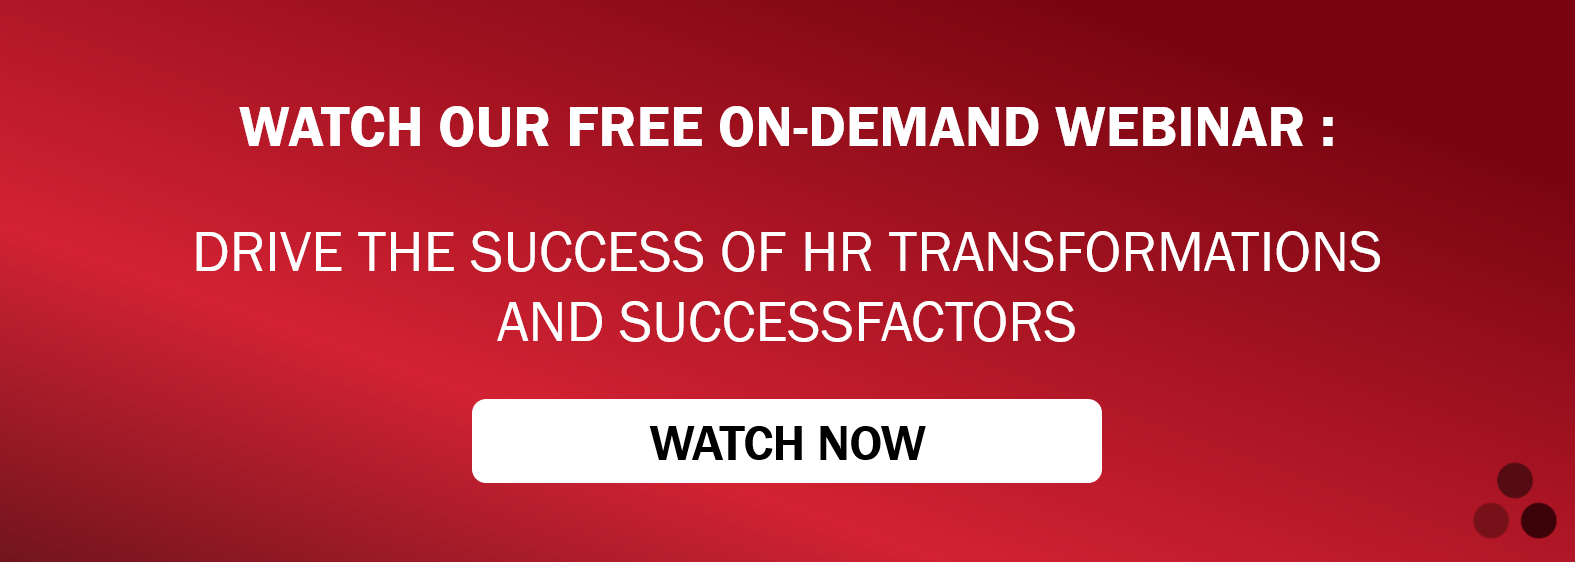 WATCH OUR FREE ON DEMAND WEBINAR NOW